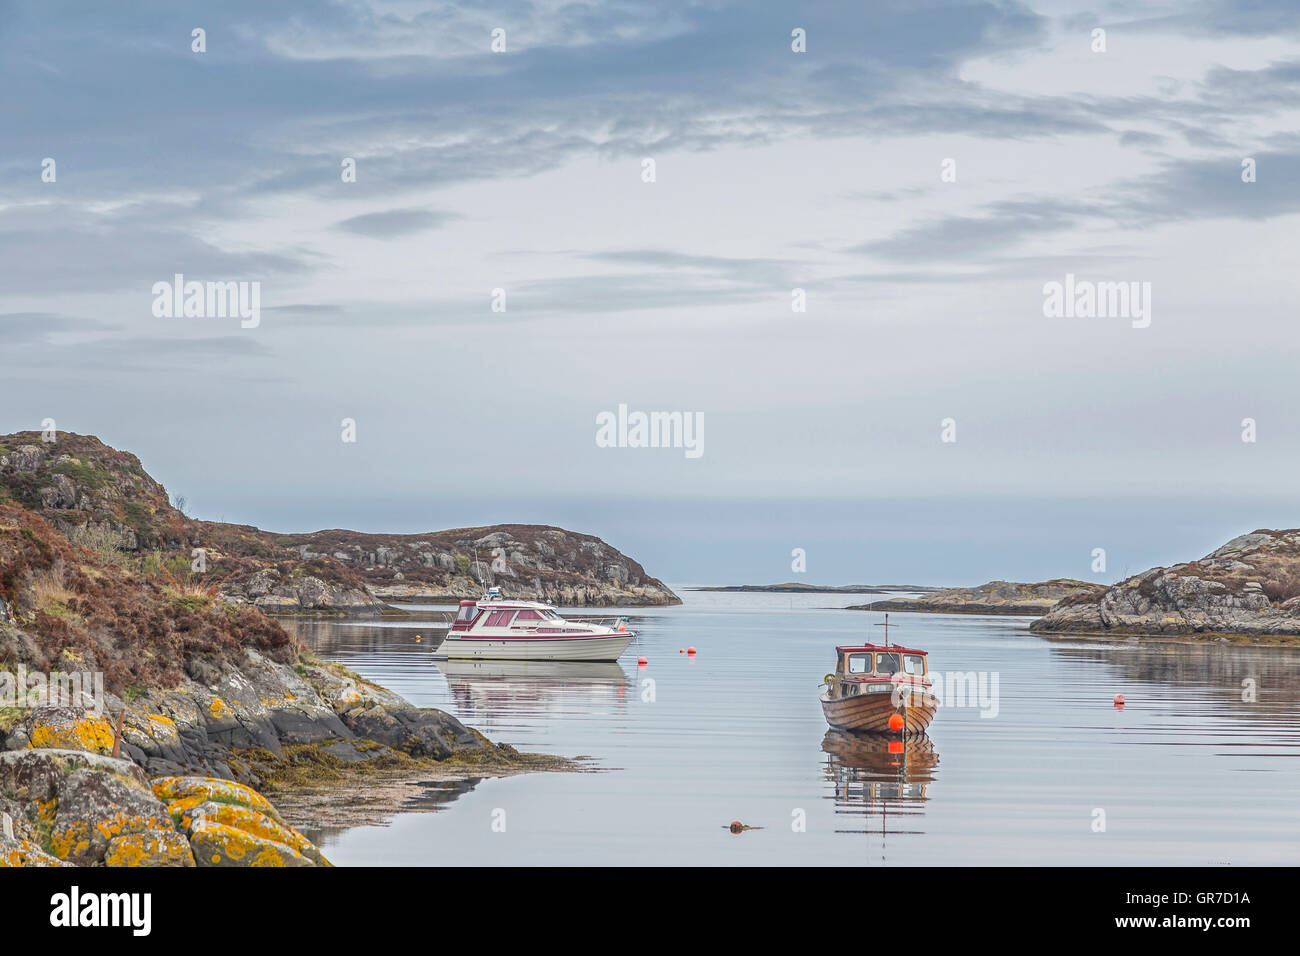 Fishing Boat Anchored On The Sheltered Harbor Entrance - Stock Image